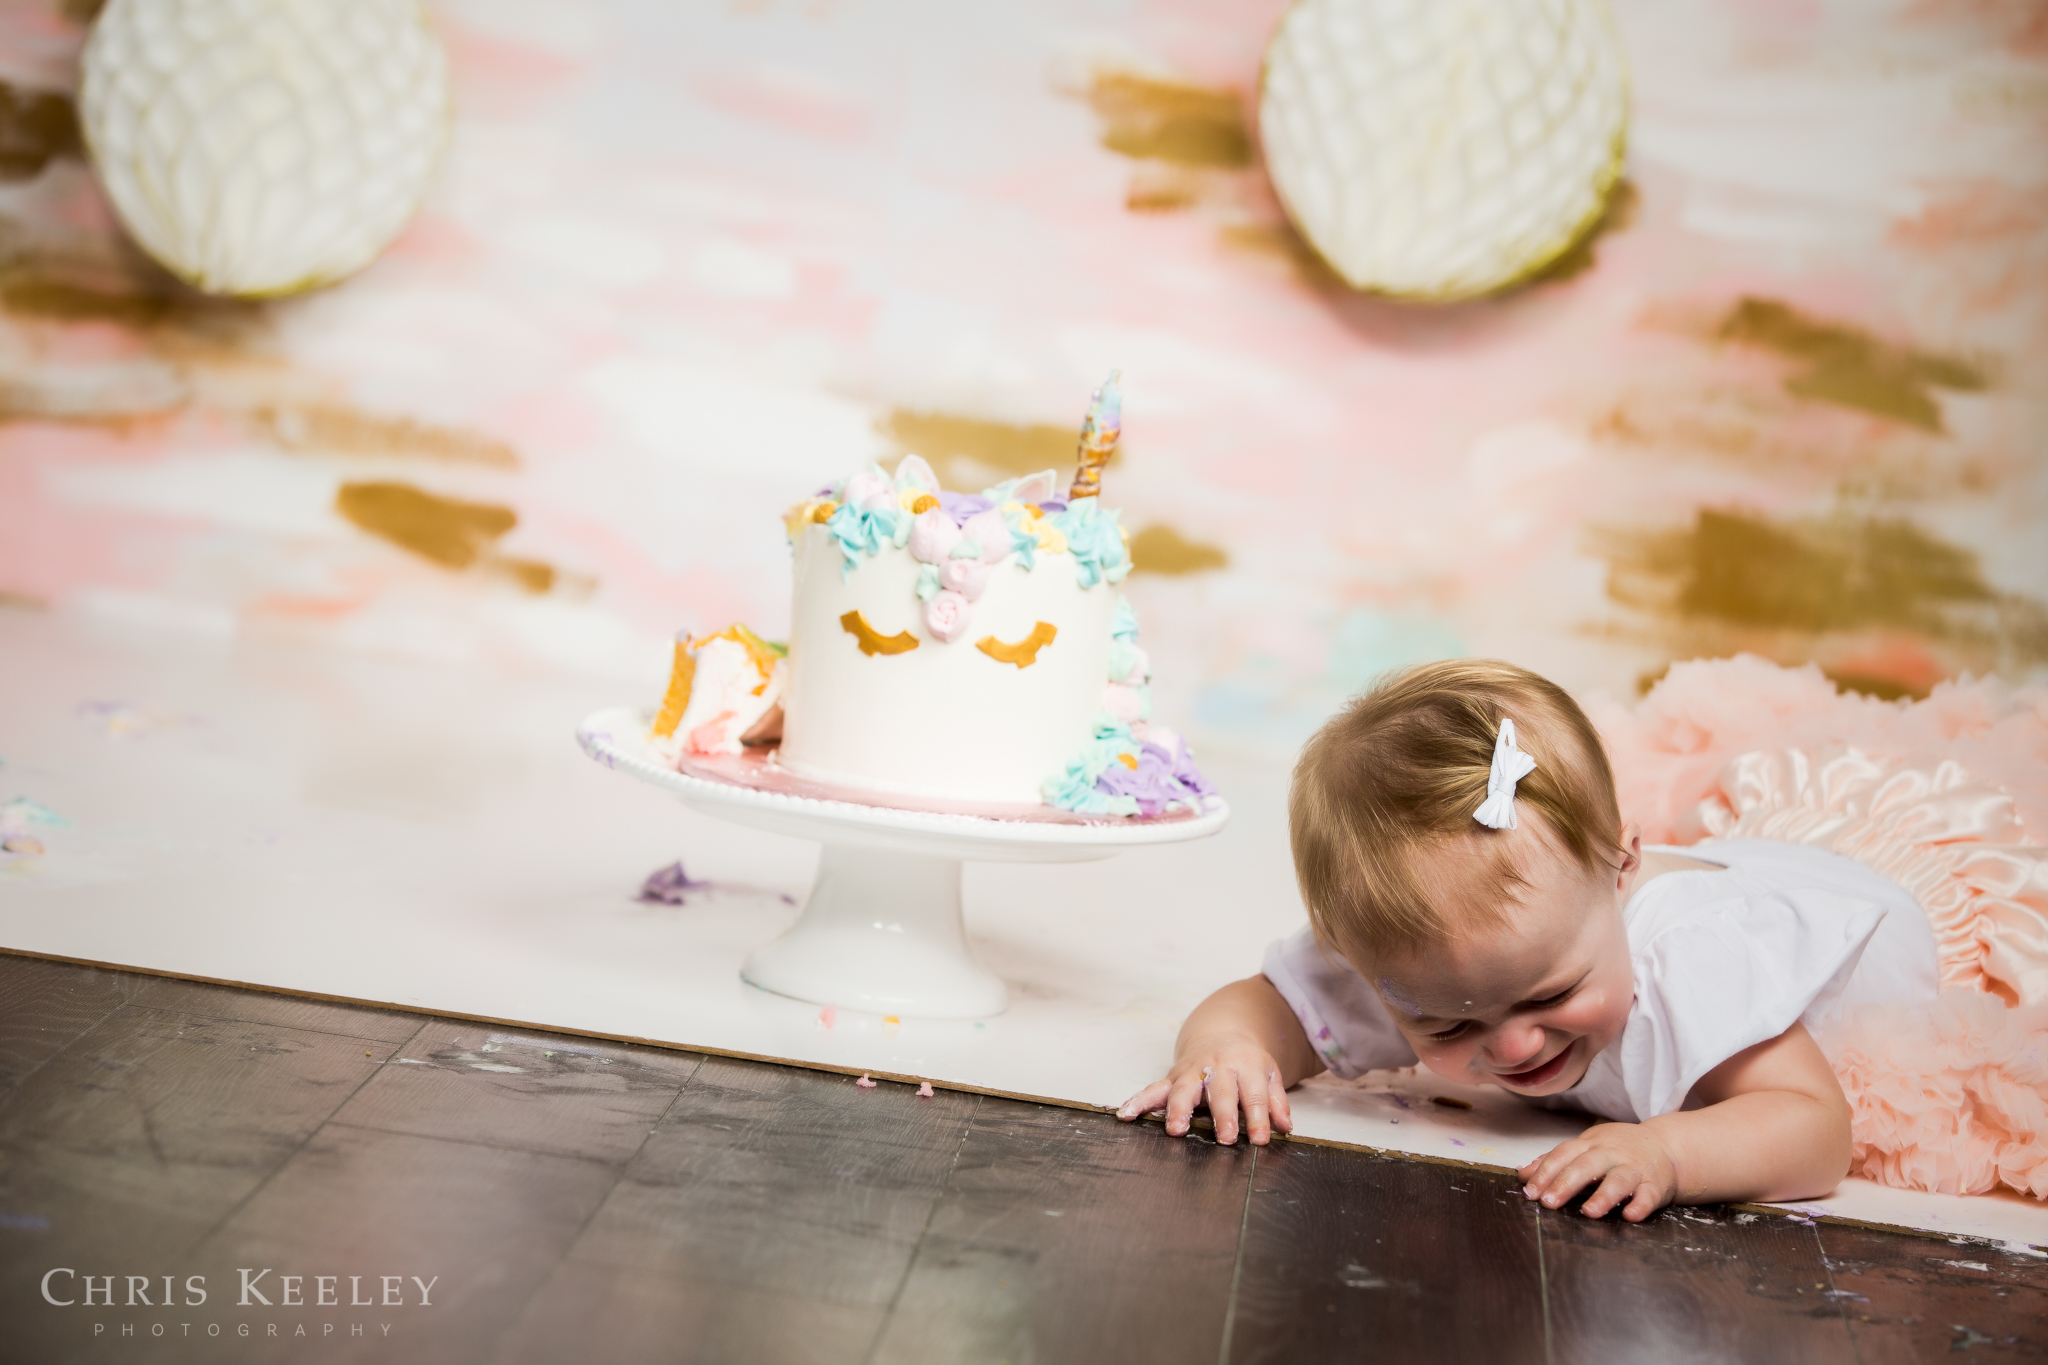 gwendolyn-one-year-cake-smash-dover-new-hampshire-photographer-21.jpg